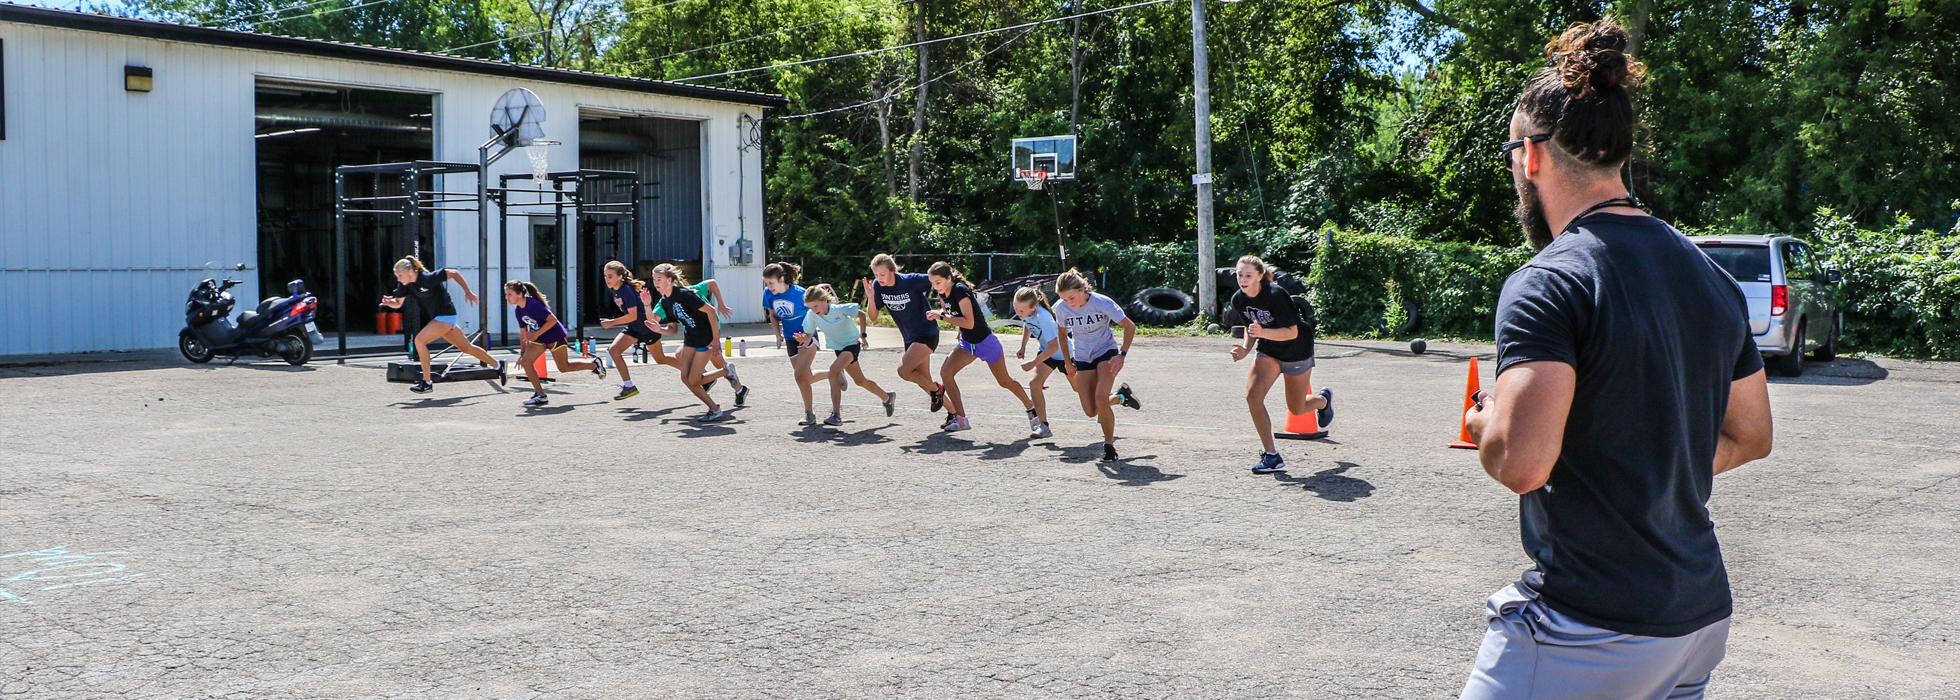 Sports Performance Training in Rochester MN, Sports Performance Training near Austin MN, Sports Performance Training near Owatonna MN, Sports Performance Training near Red Wing MN, Sports Performance Training near Winona MN, Sports Performance Training near Faribault MN, Sports Performance Training near Northfield MN, Sports Performance Training near Albert Lea MN, Sports Performance Training near Hastings MN